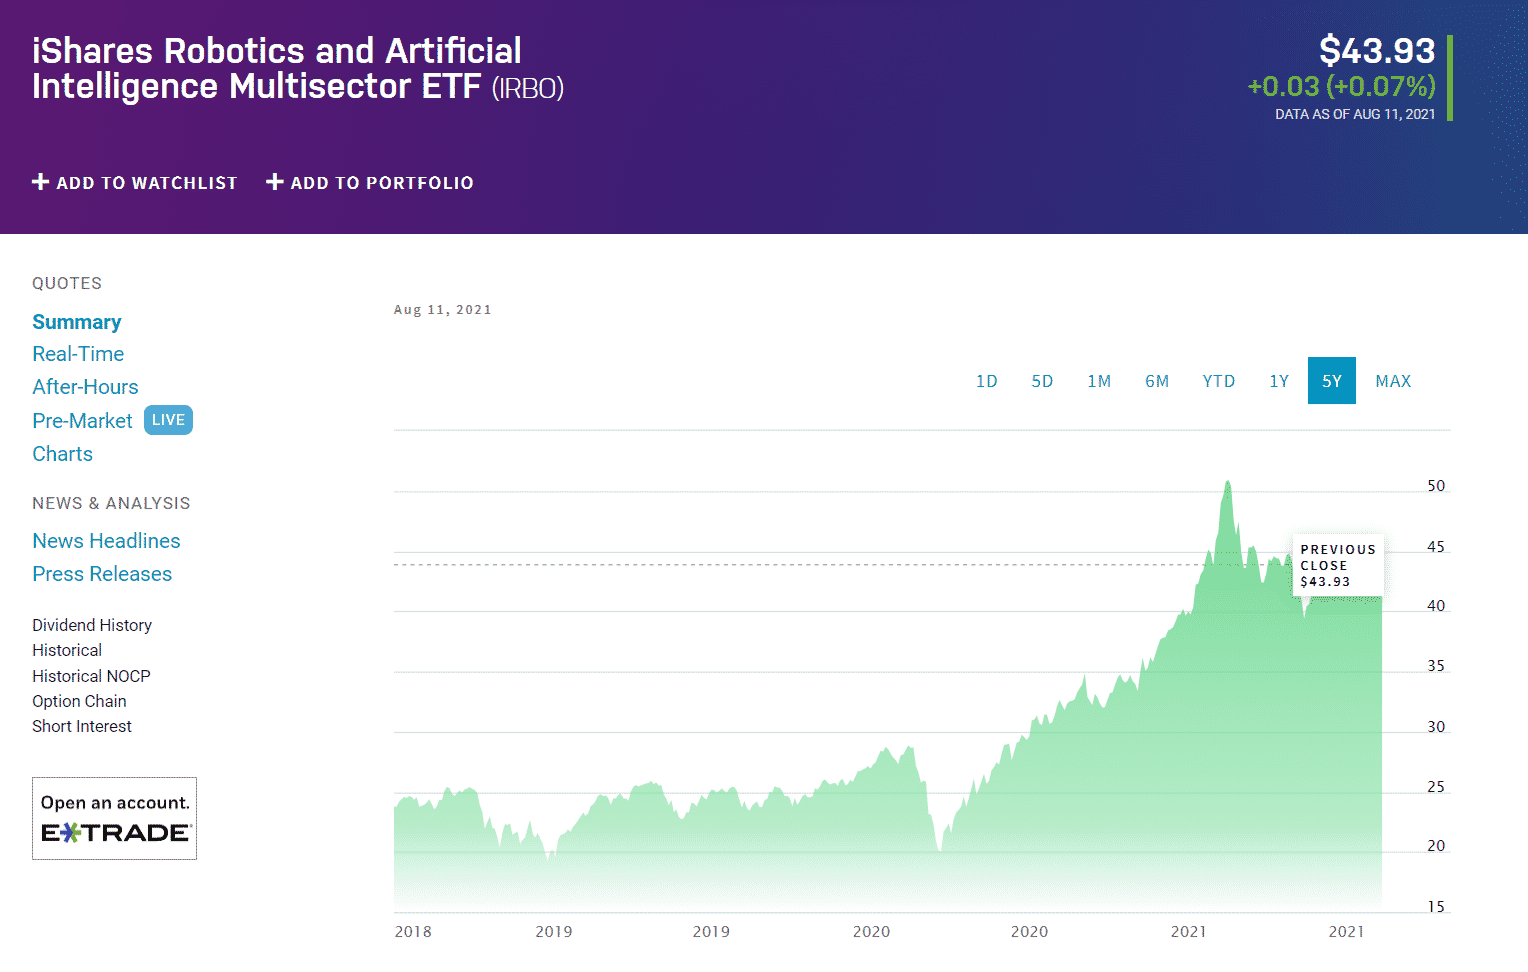 iShares Robotics and Artificial Intelligence Multisector ETF IRBO chart